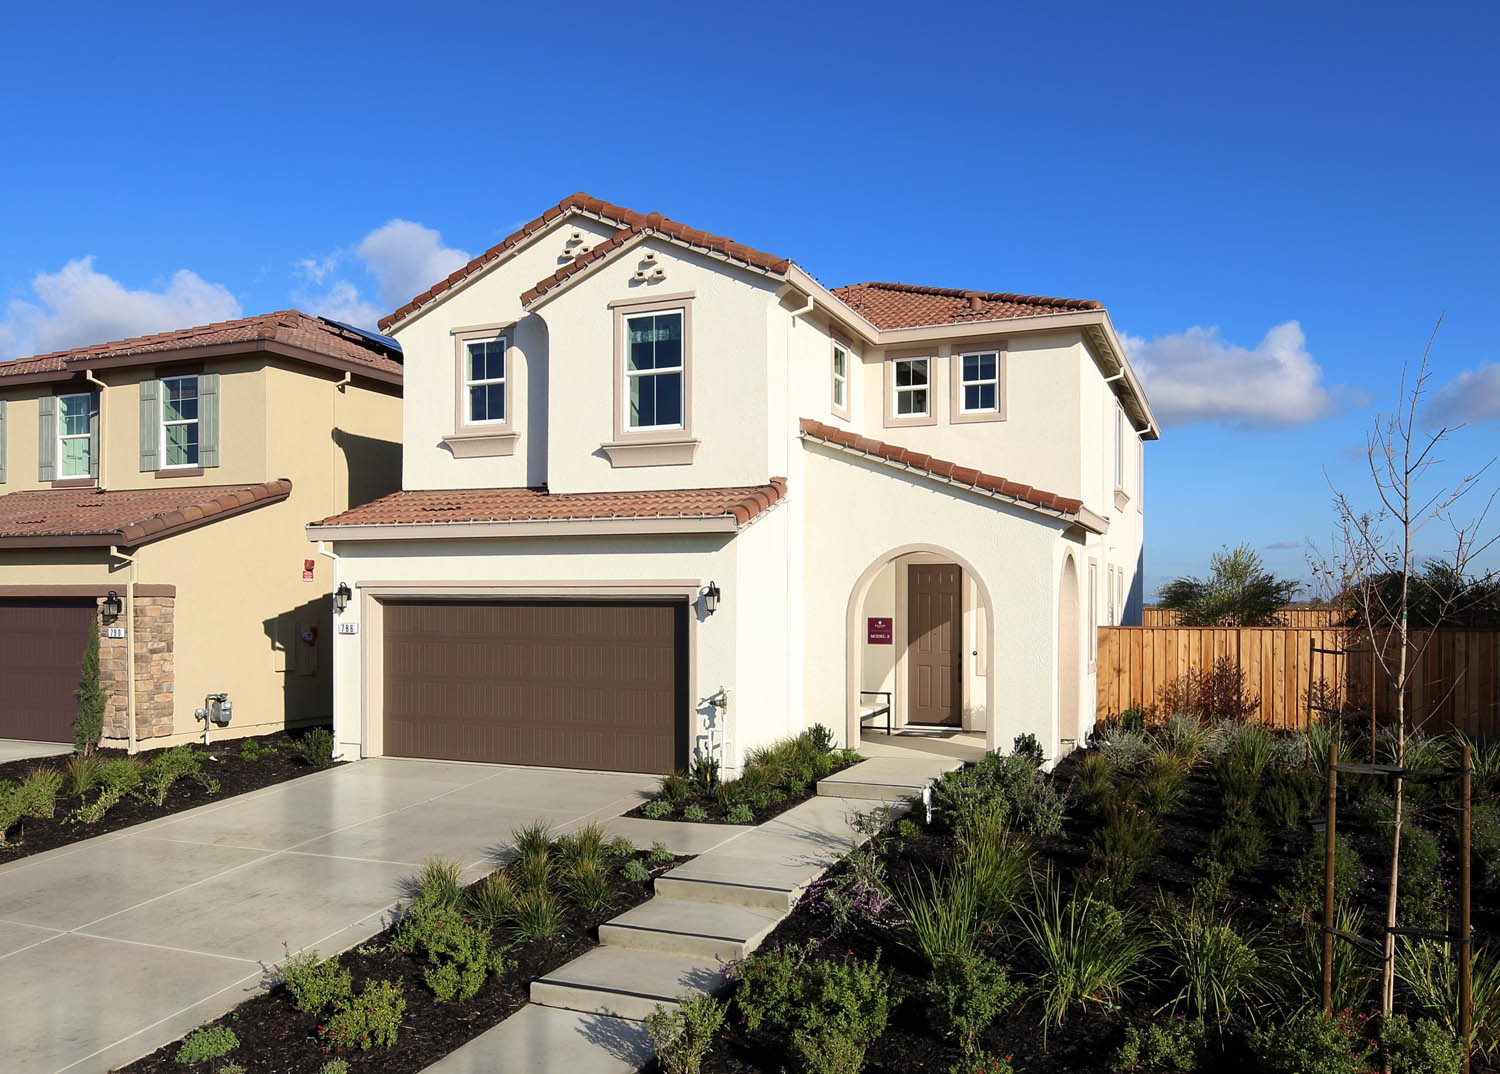 Residence 2 Exterior | Easton | New Homes in Oakley, CA | Brookfield Residential